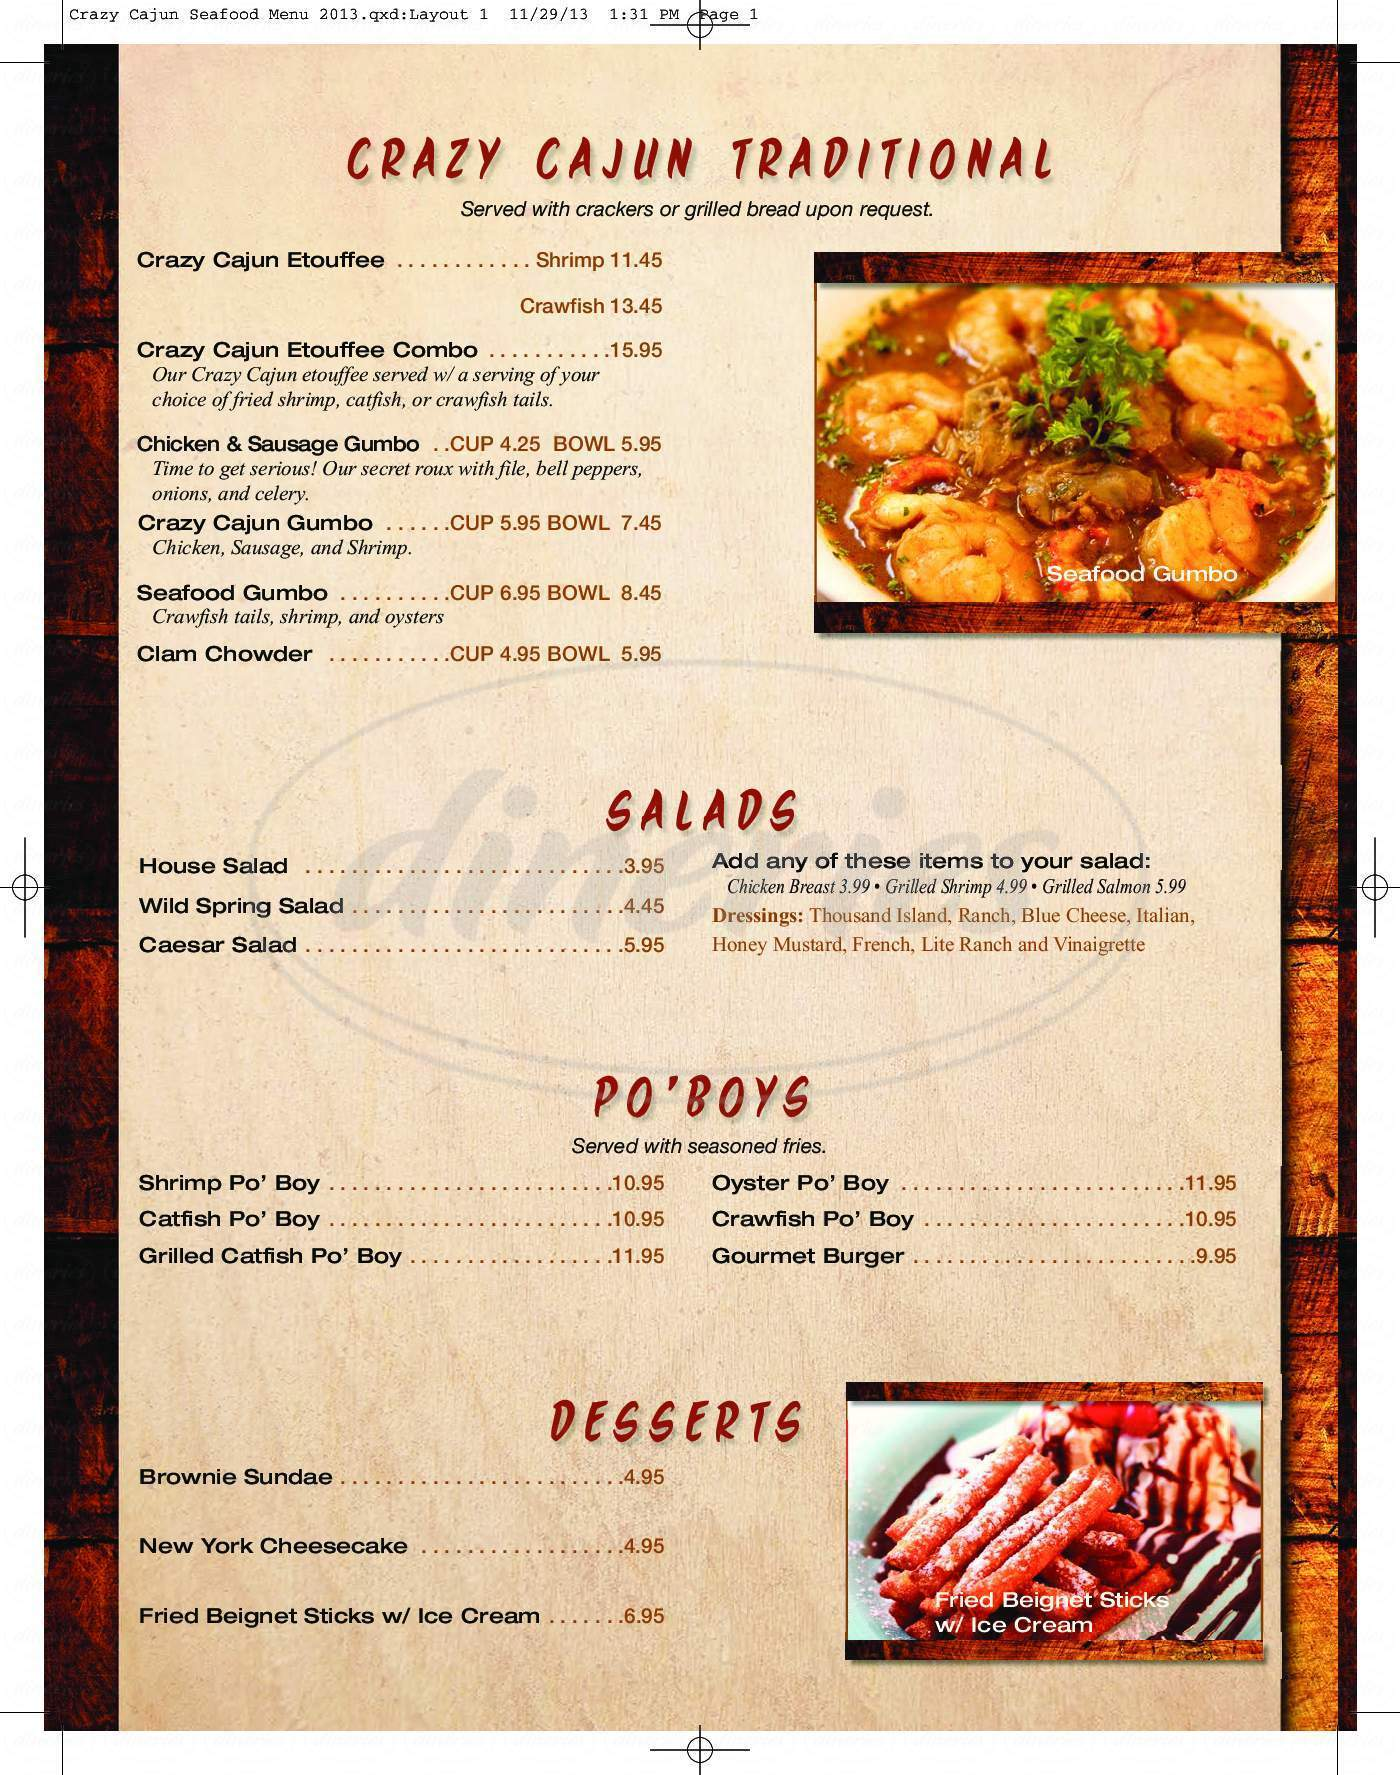 menu for Crazy Cajun Seafood & Sports